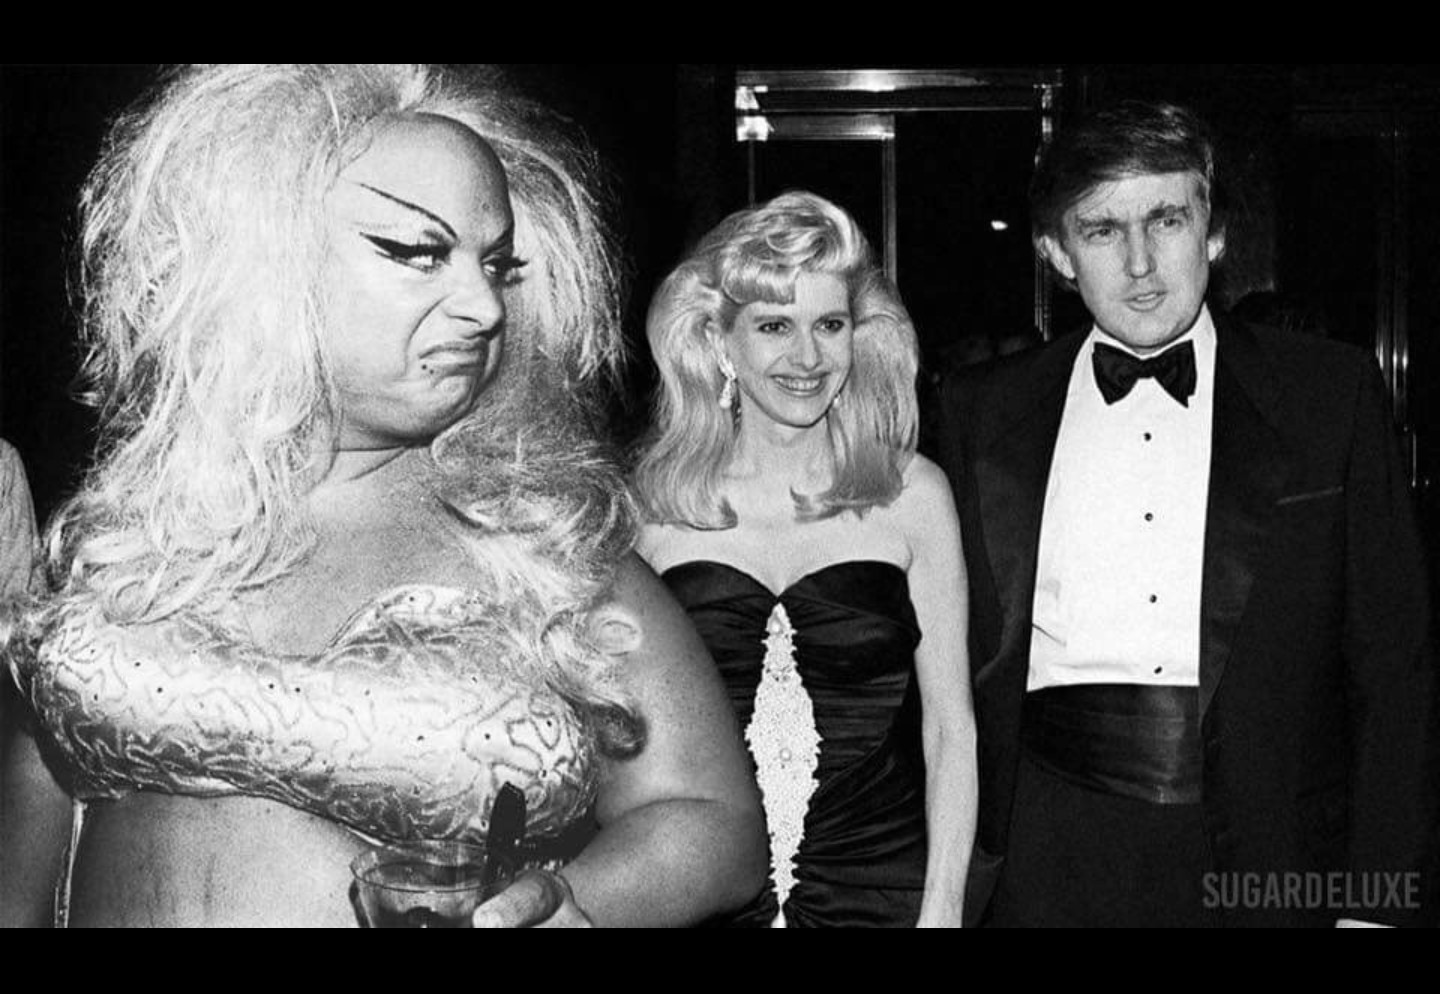 Divine is disgusted by slumming yuppies